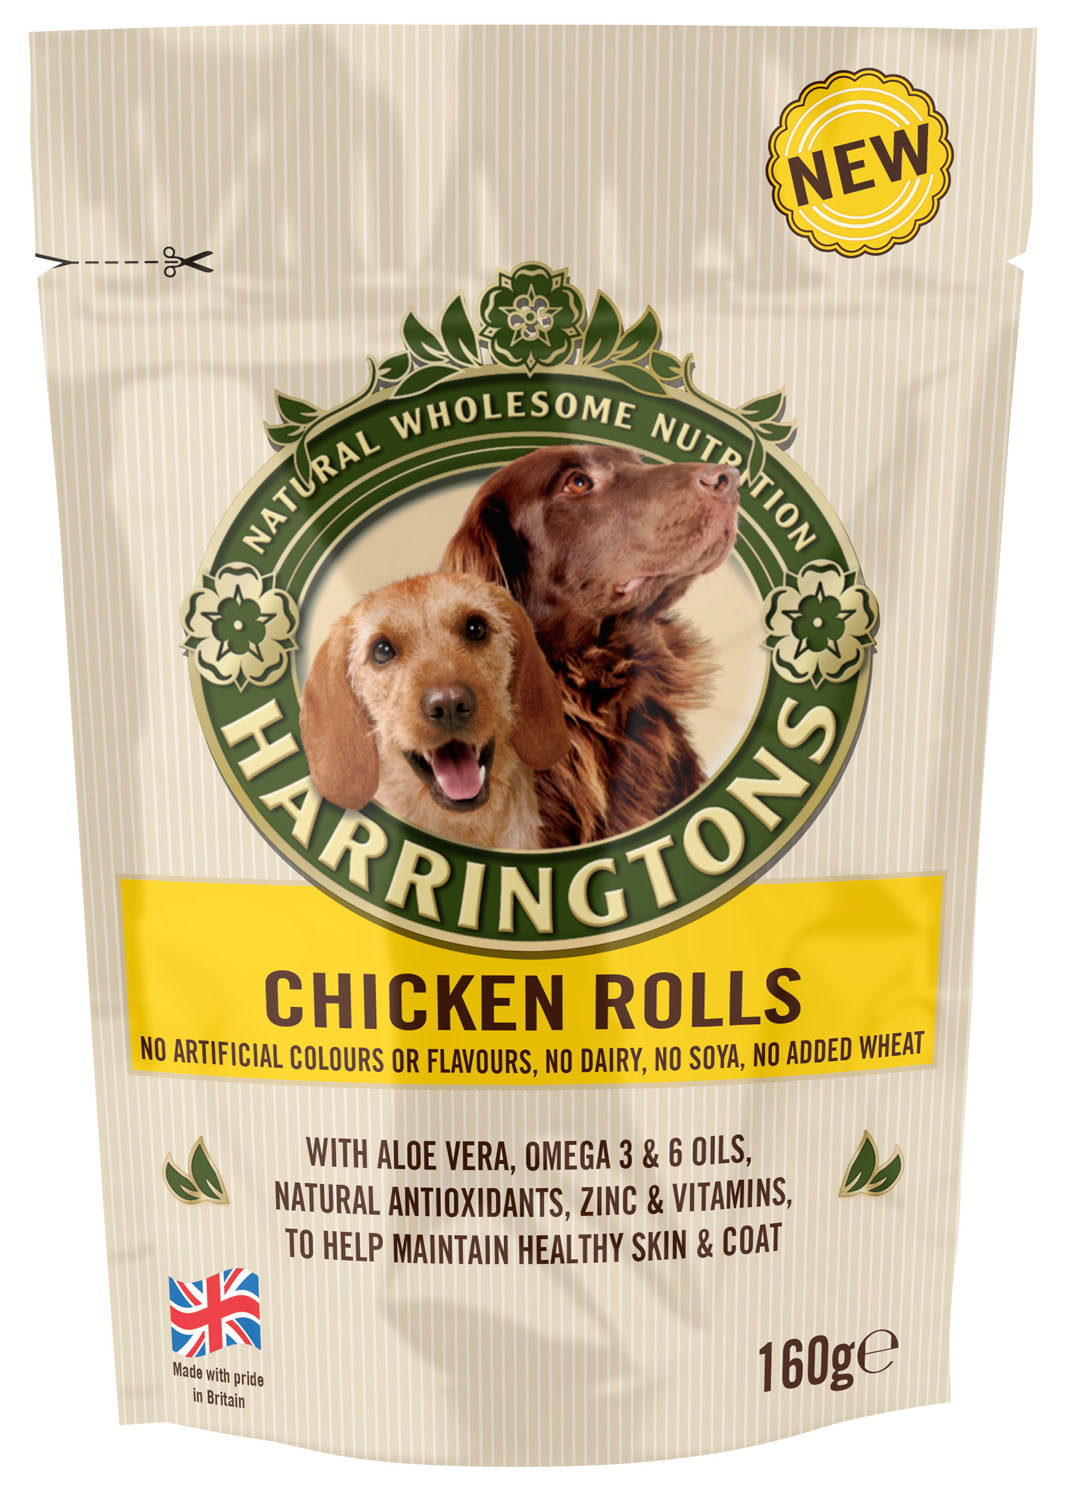 Harringtons Chicken Rolls Dog Treats